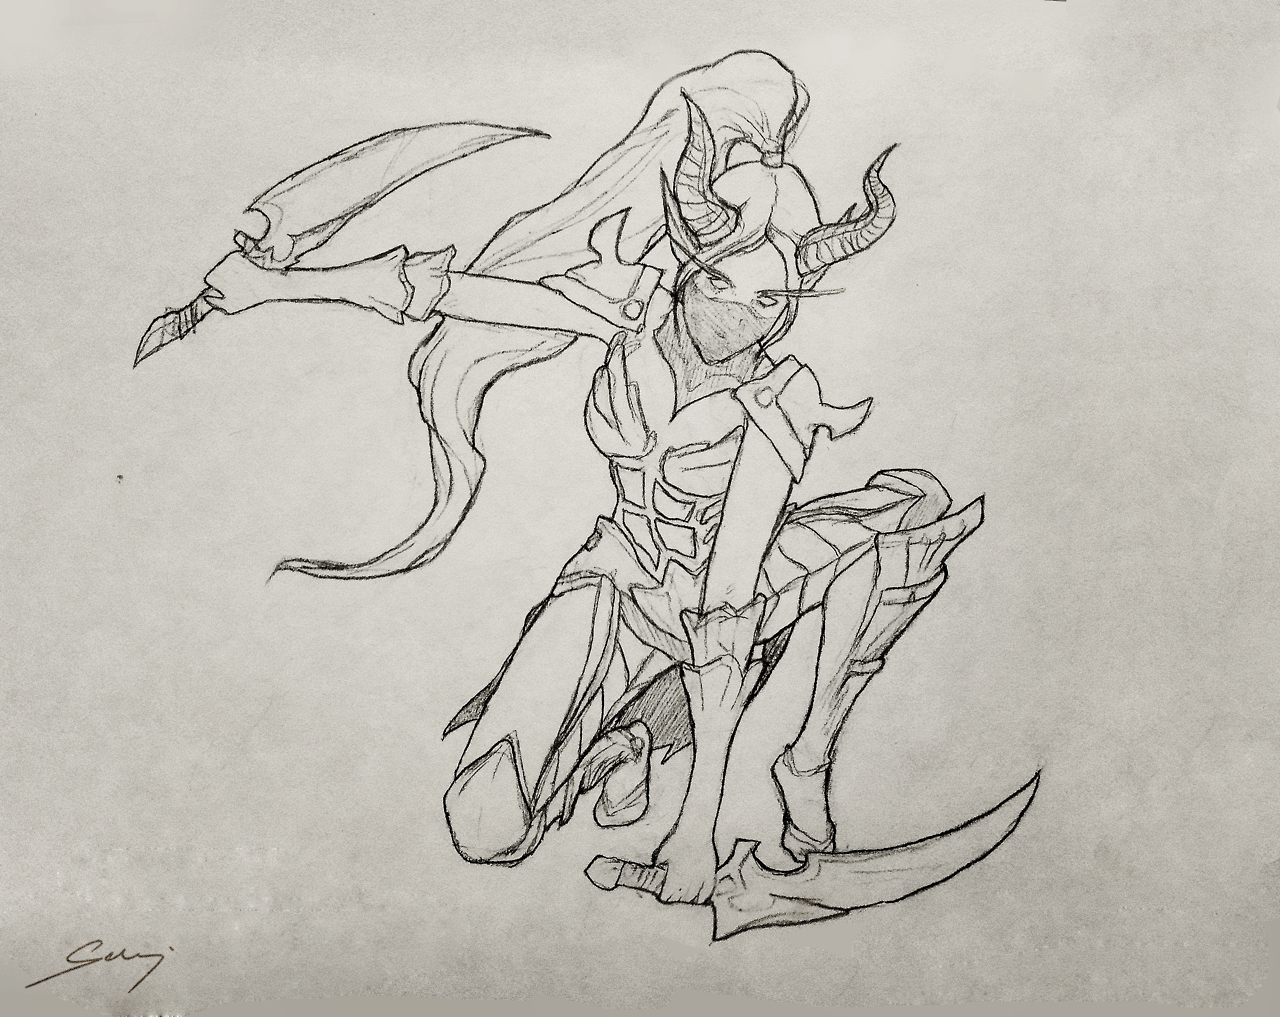 Pvaia Hots Heroes Of The Storm Warcraft Wow Fanart Warcraft Fanart Valeera Valeera Sanguinar Rogue Fan Art Illustrat Character Art Art Fan Art Now, her shadowy skills find her a natural fit within the secretive rogue order, the uncrowned, in their fight. pvaia hots heroes of the storm